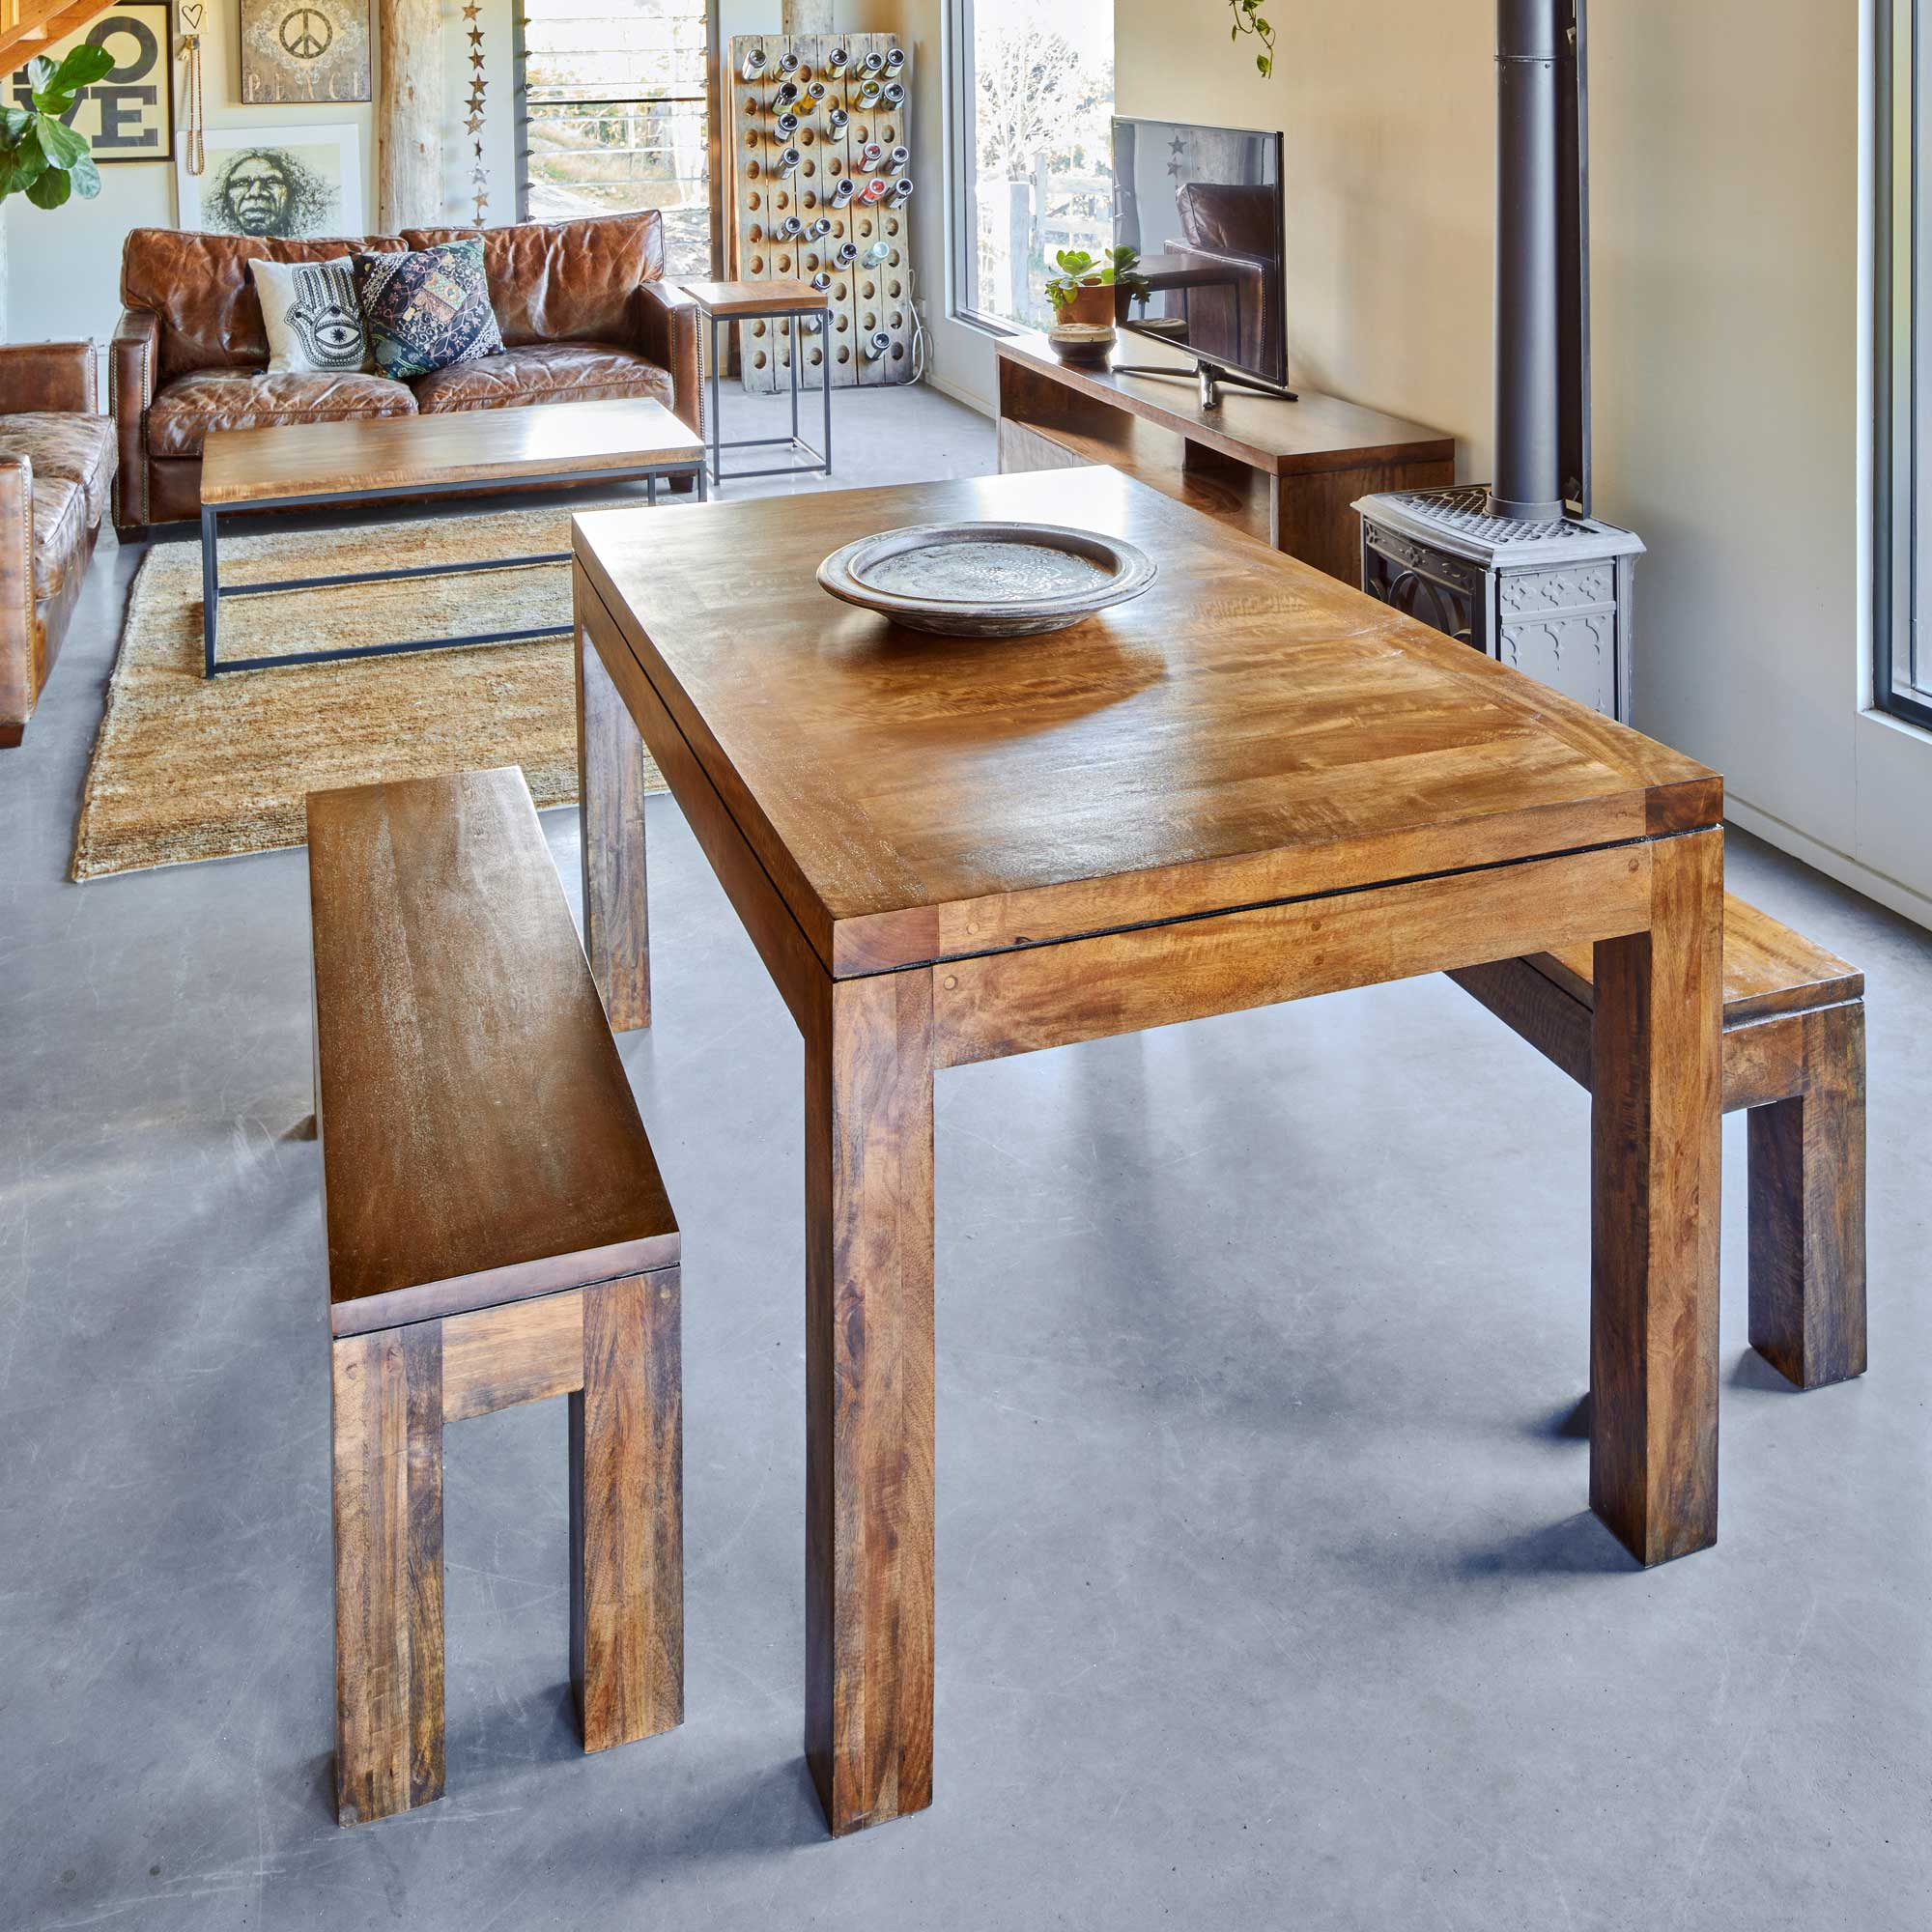 NEW-YORK-DINING-TABLE-BENCH-SET